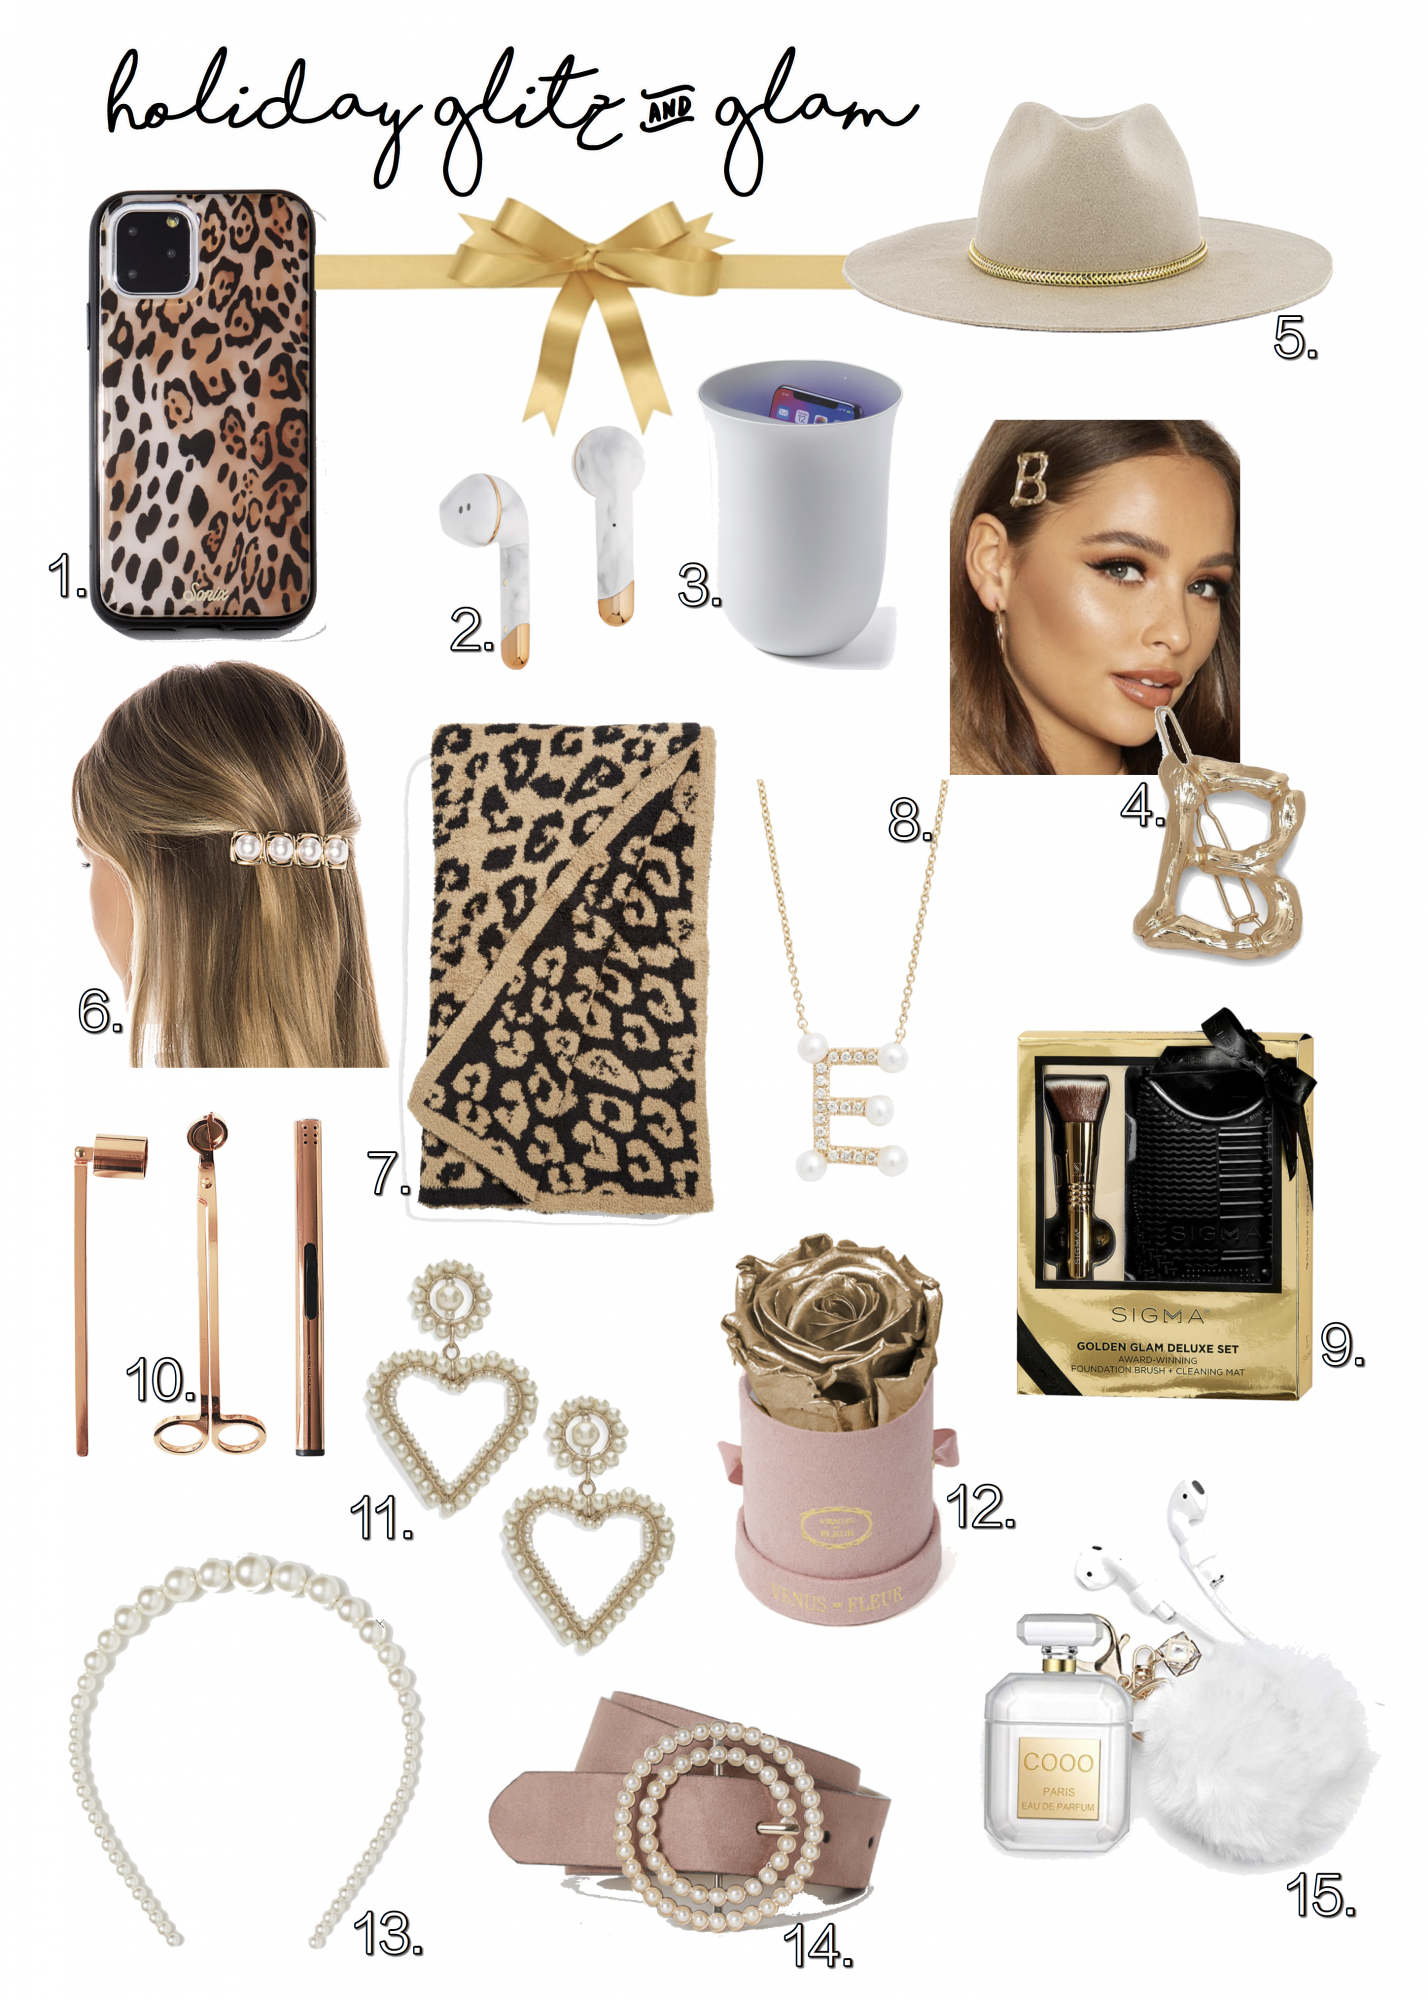 holiday gift guide 2019 emily gemma the sweetest thing blog | Glitz and Glam Gifts [👀Cute Things I've Got My Eyes On...] by popular Oklahoma life and style blog, The Sweetest Thing: collage image of LEOPARD PRINT IPHONE 11 PHONE PRO CASE, MARBLE EAR PODS, PHONE SANITIZER, BAMBOO INITIAL HAIR CLIP, HAT WITH GOLD CHAIN, PEARL HAIR CLIP, LEOPARD BLANKET, PEARL INITIAL NECKLACE, SIGMA BEAUTY GLAM GIFT SET, CANDLE ACCESSORY SET, PEARL HEART EARRINGS, VENUS ET FLEUR MINI ROSE BOX, PEARL HEADBAND, PEARL BUCKLE BELT and AIRPOD CASE WITH KEYCHAIN